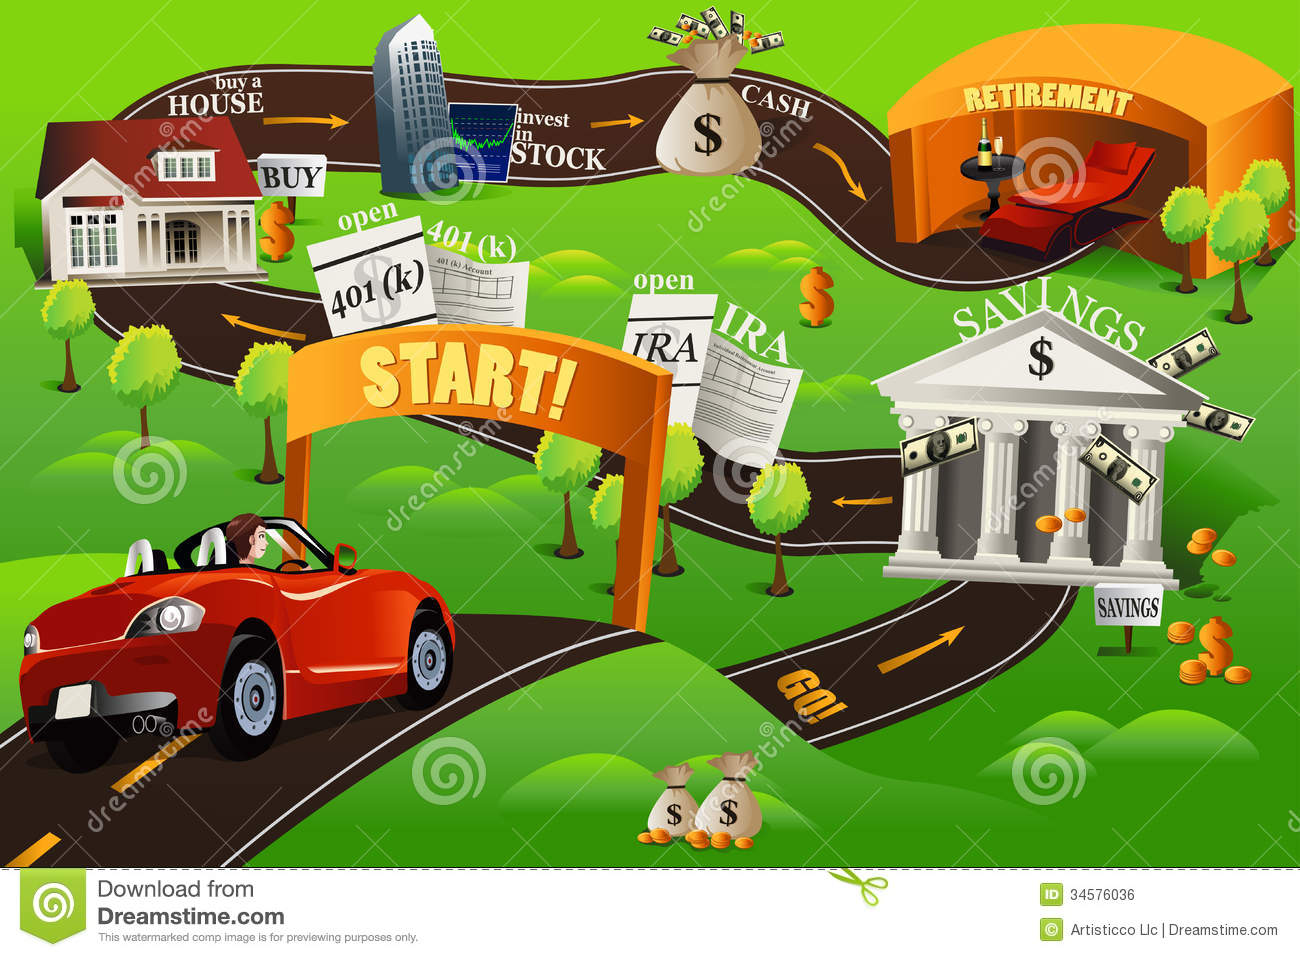 k stock illustrations. College road map clipart